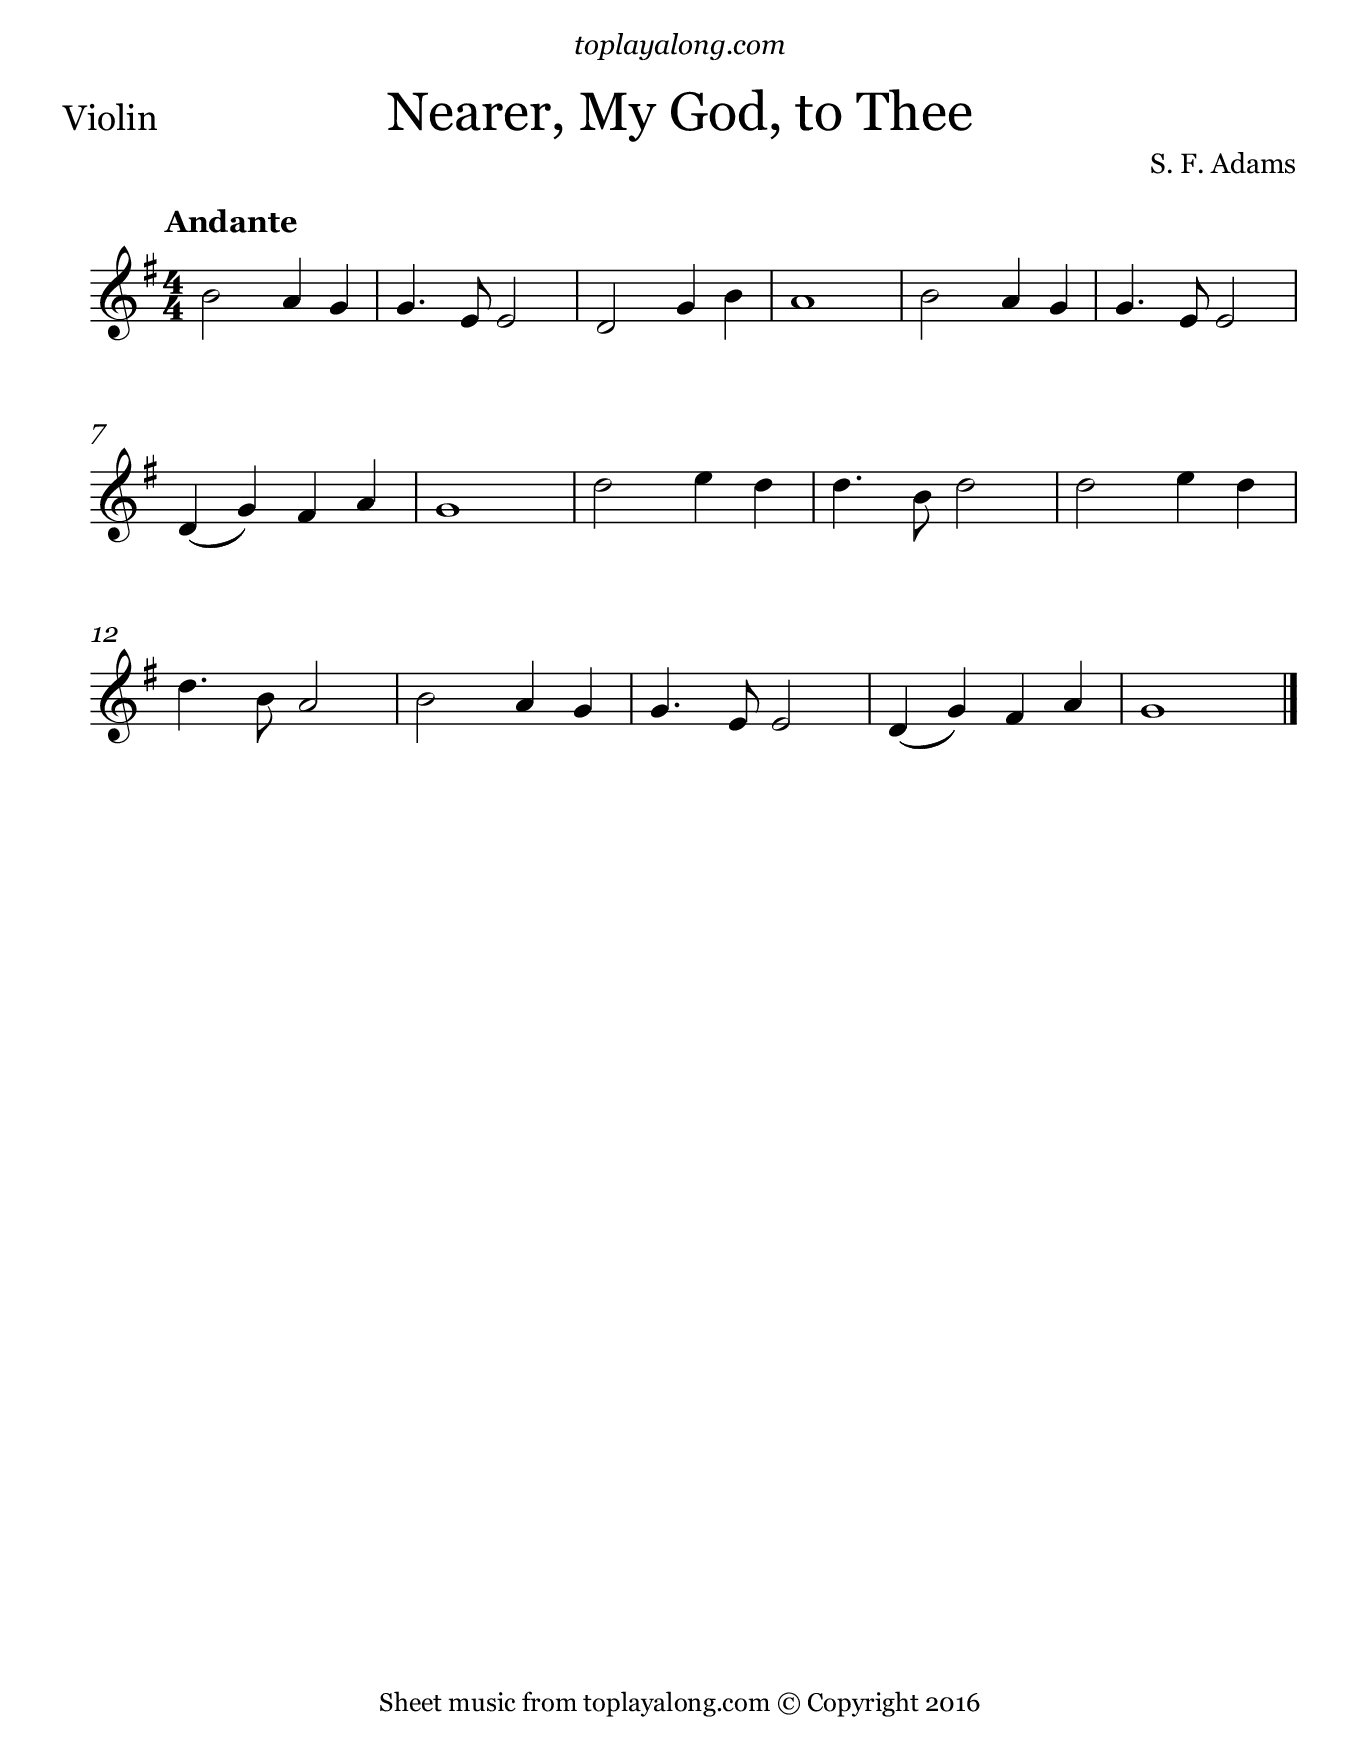 Nearer, My God, to Thee. Sheet music for Violin, page 1.